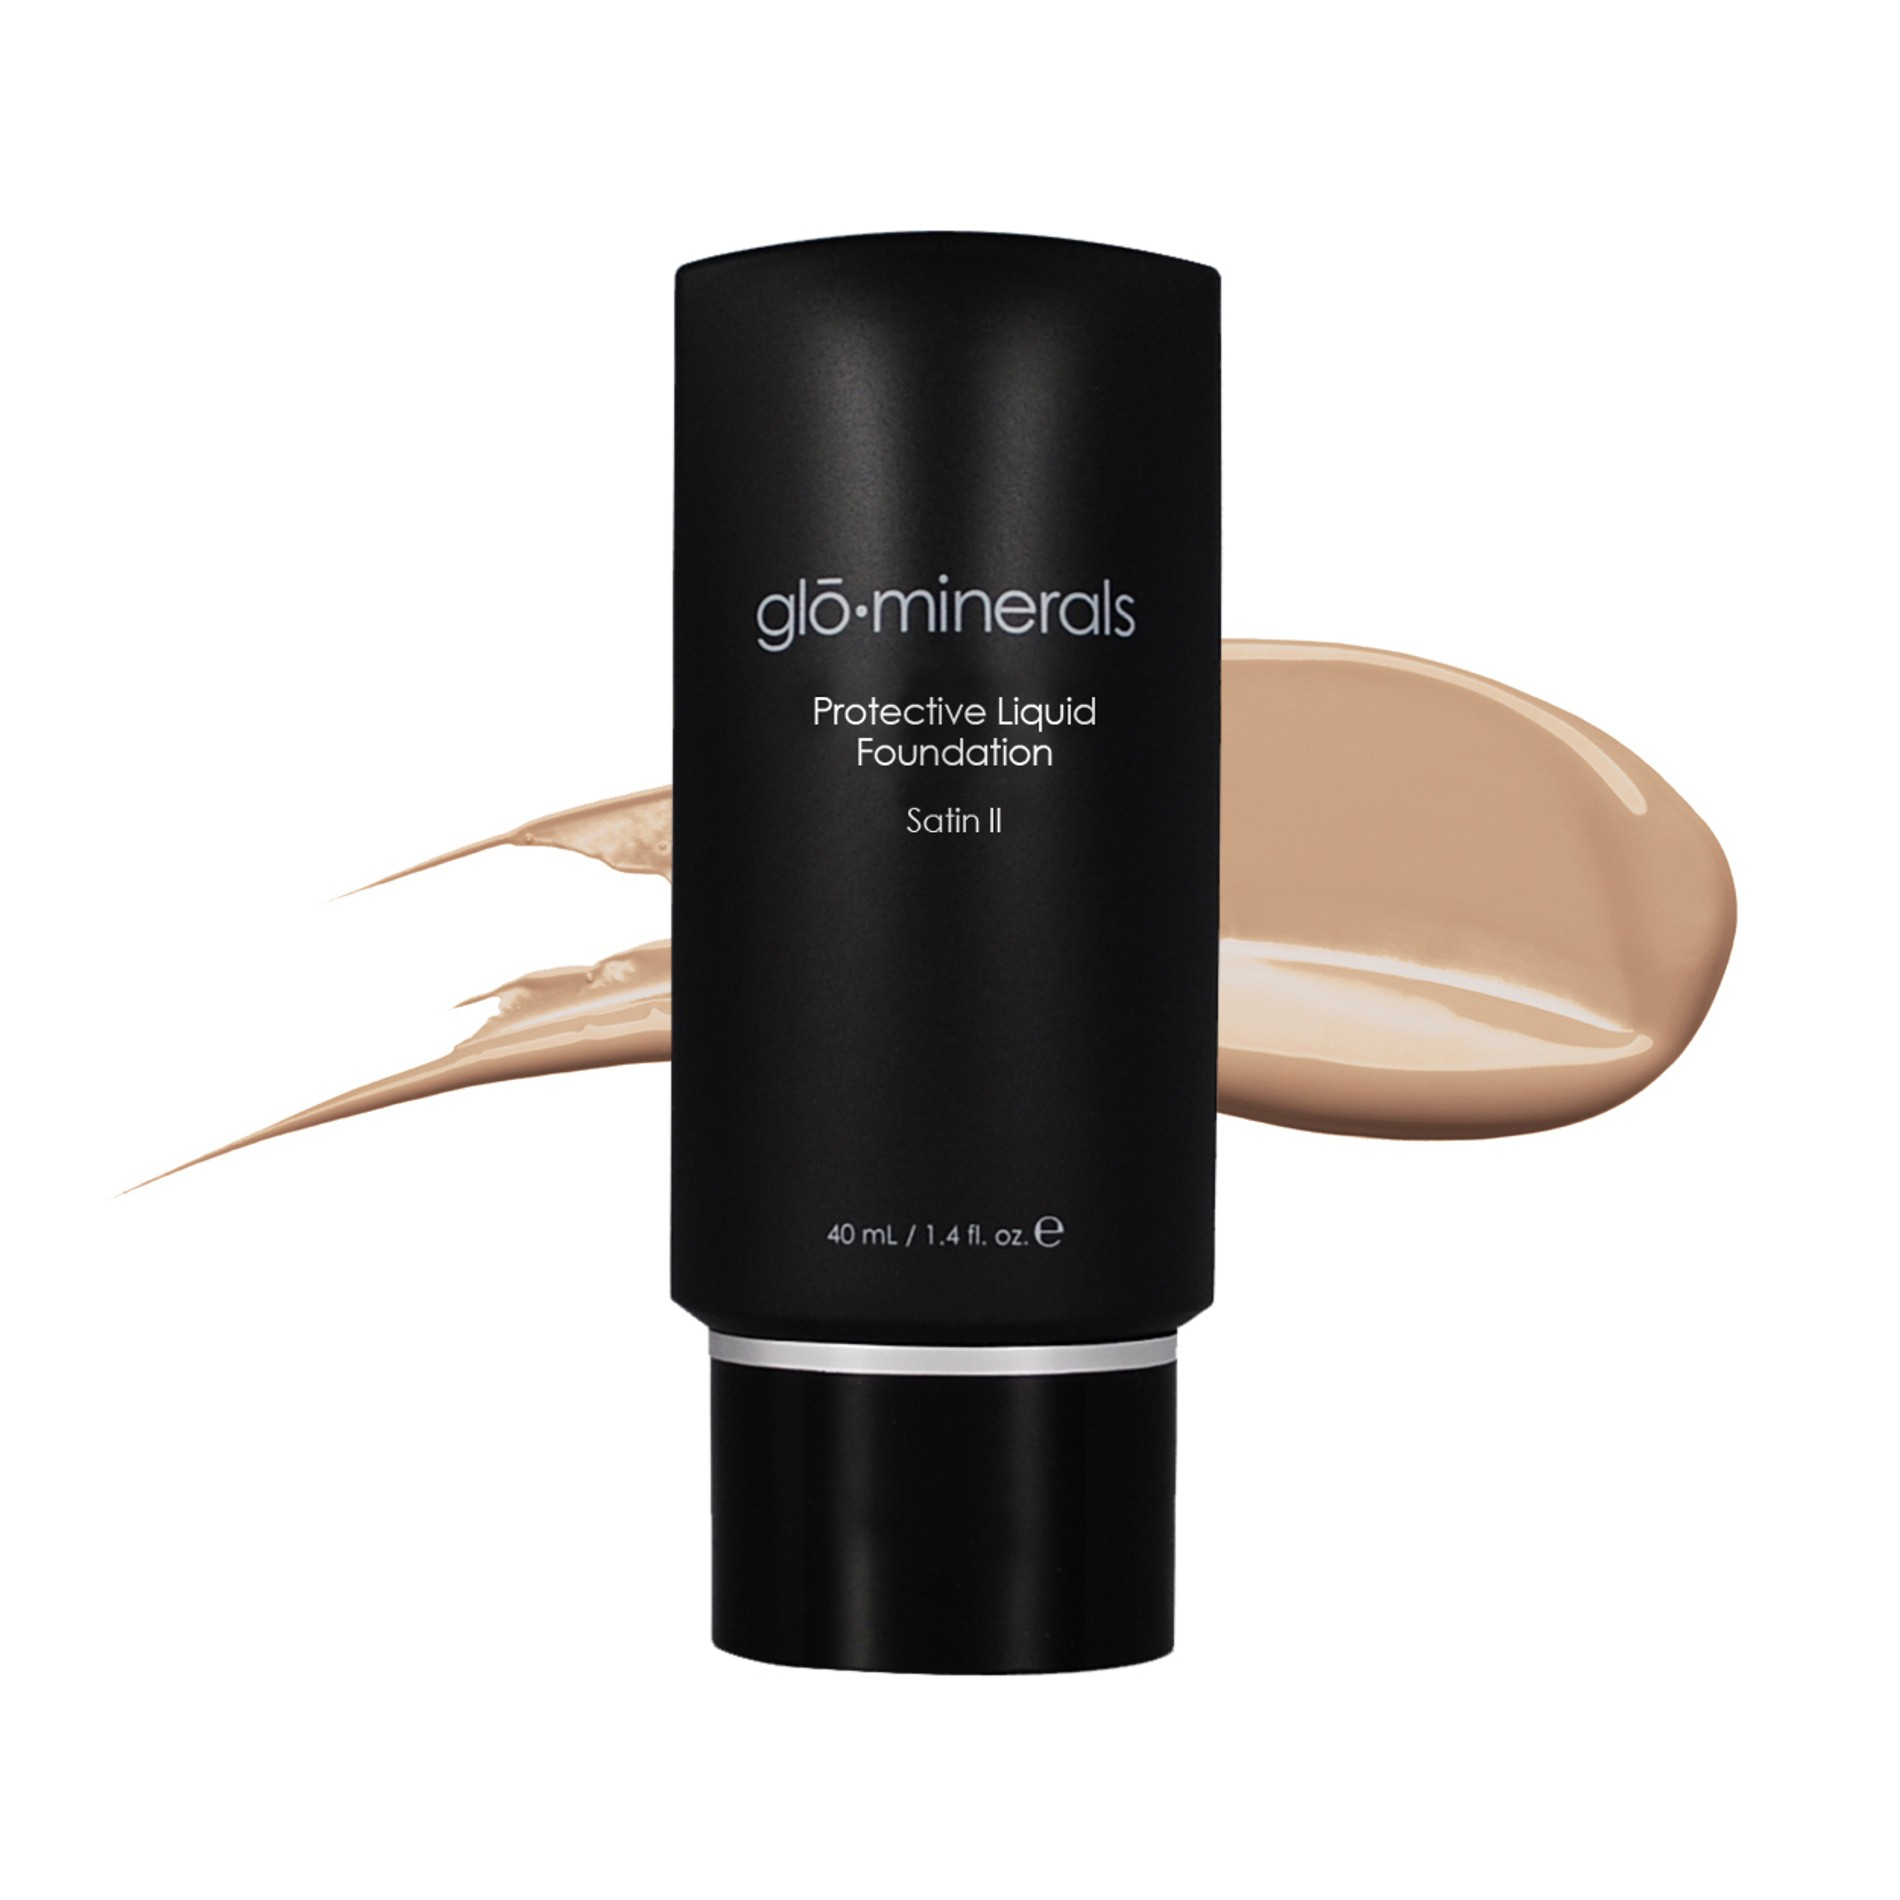 Protective Liquid Foundation Satin